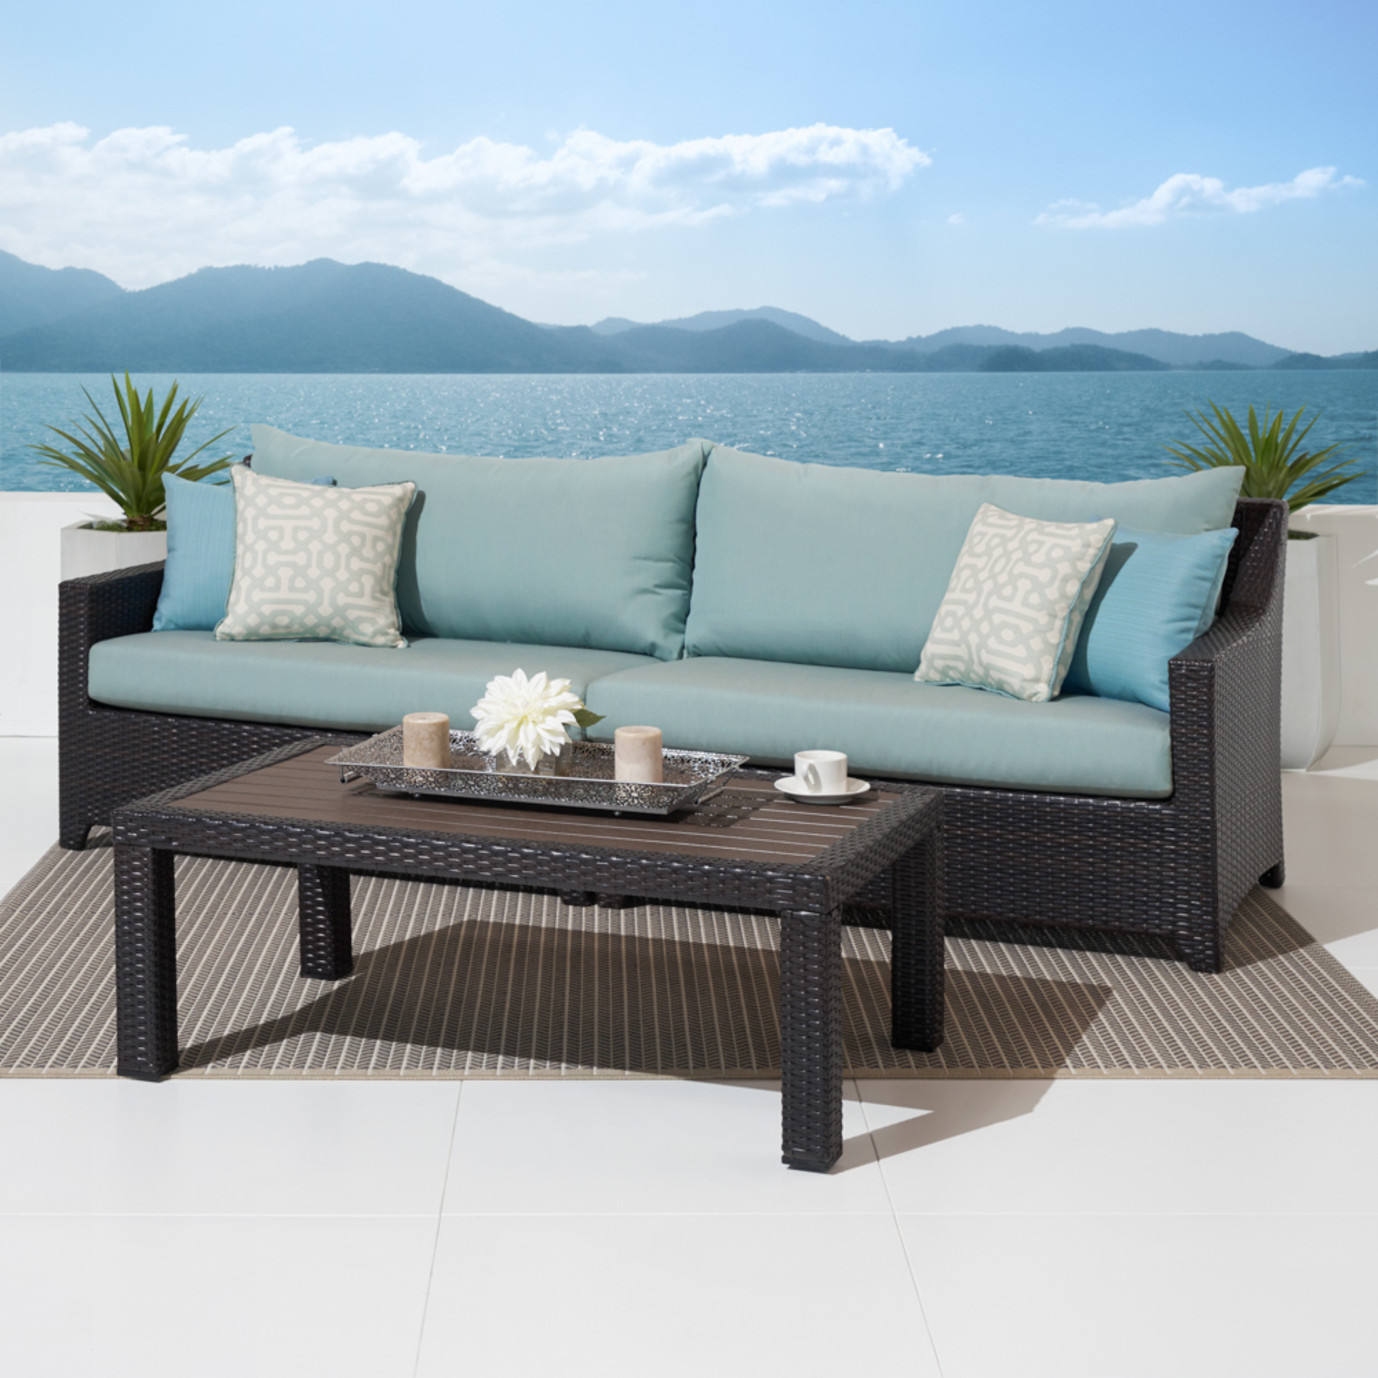 Deco™ Sofa with Deluxe Coffee Table - Spa Blue